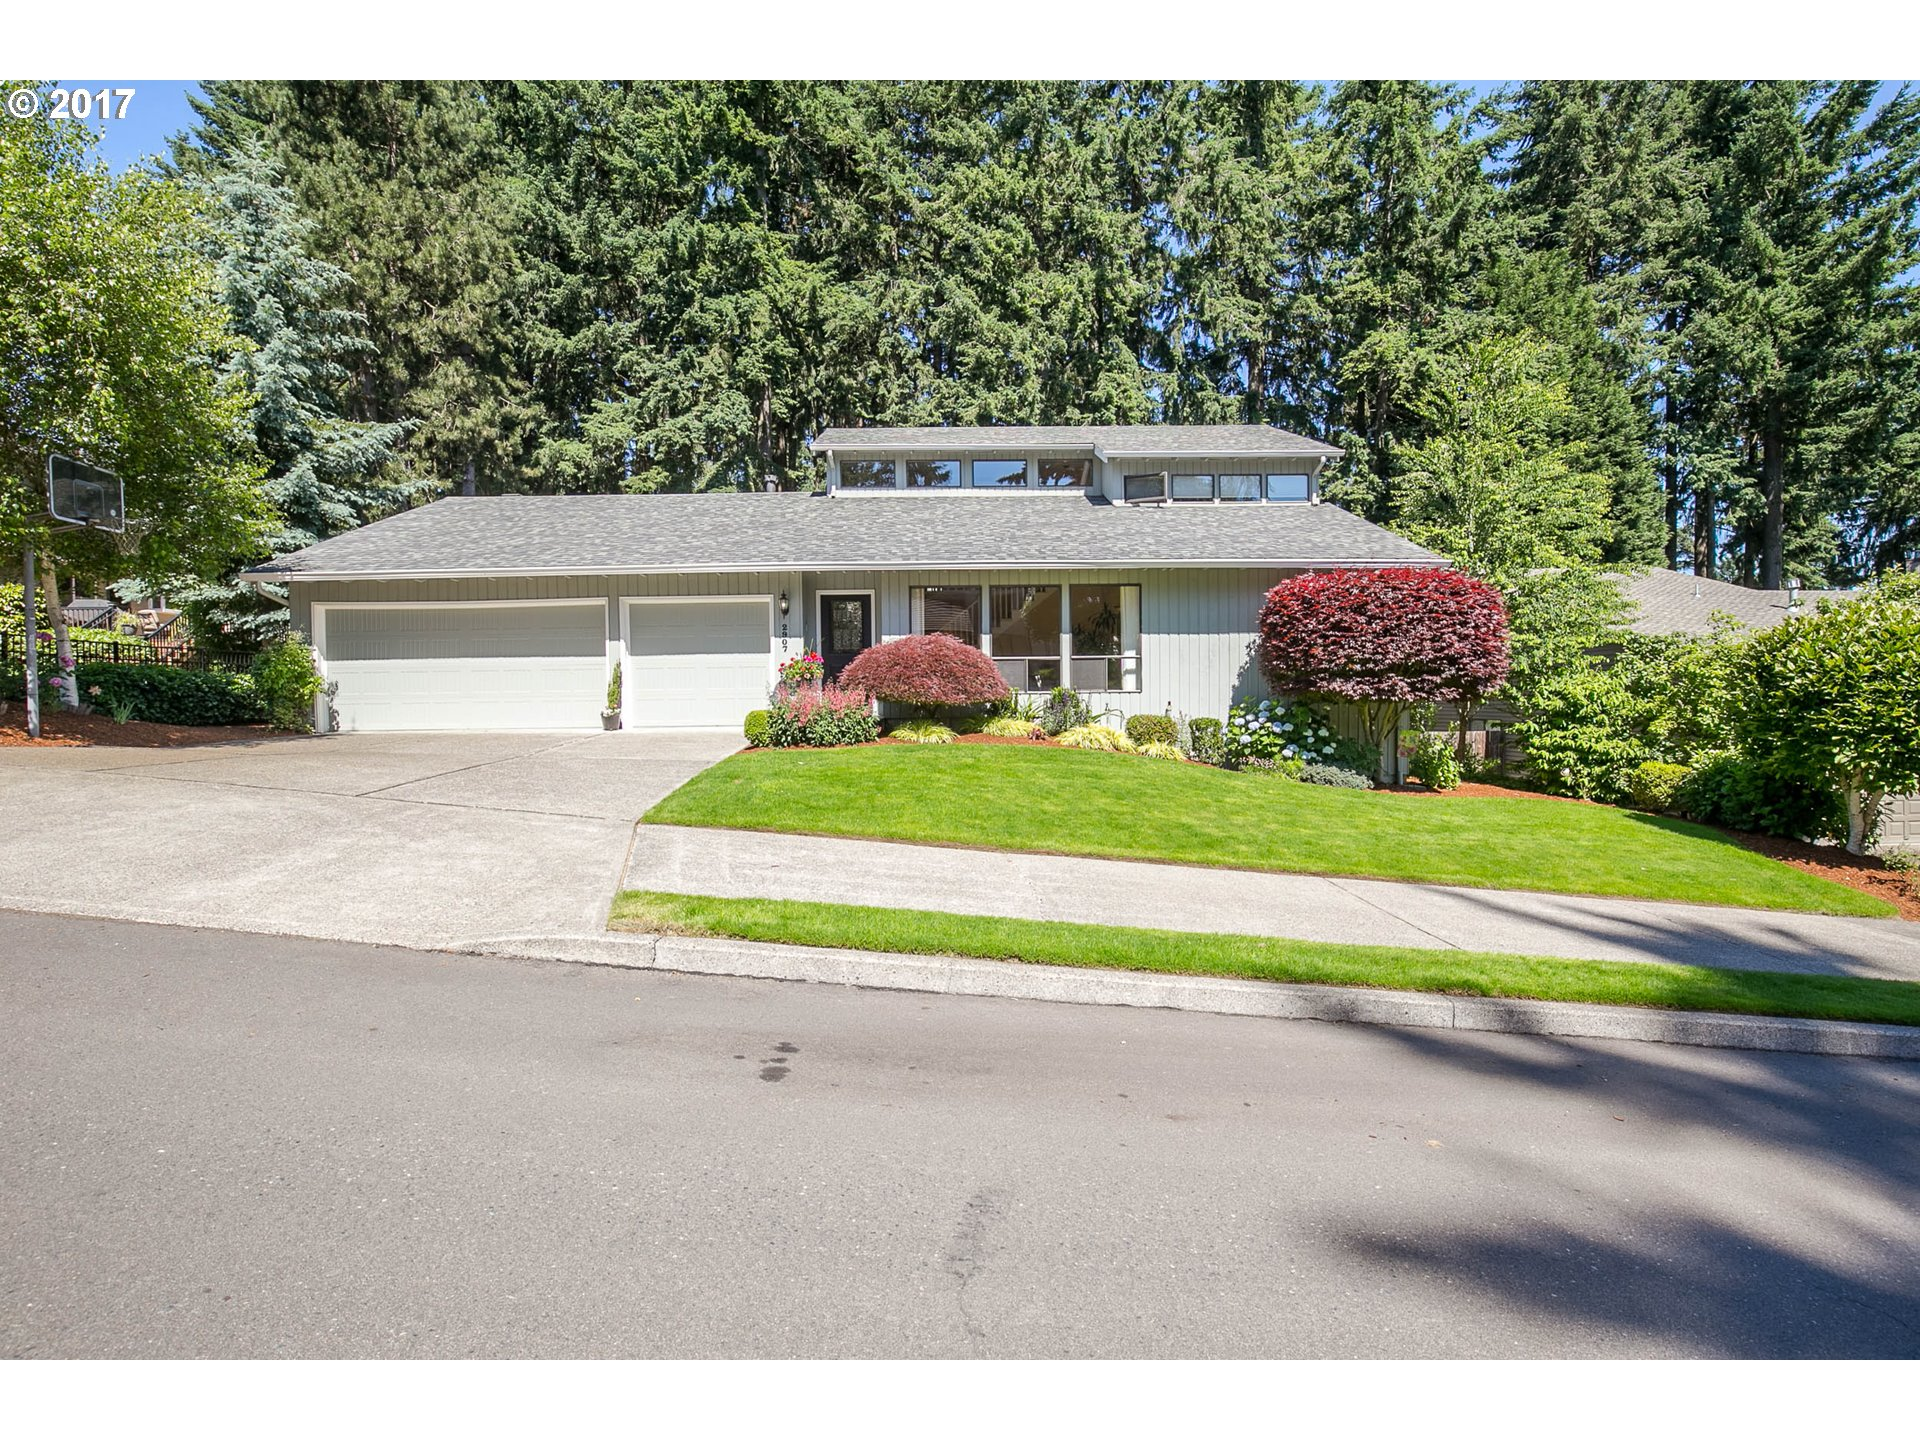 2907 CARRIAGE WAY, West Linn, OR 97068